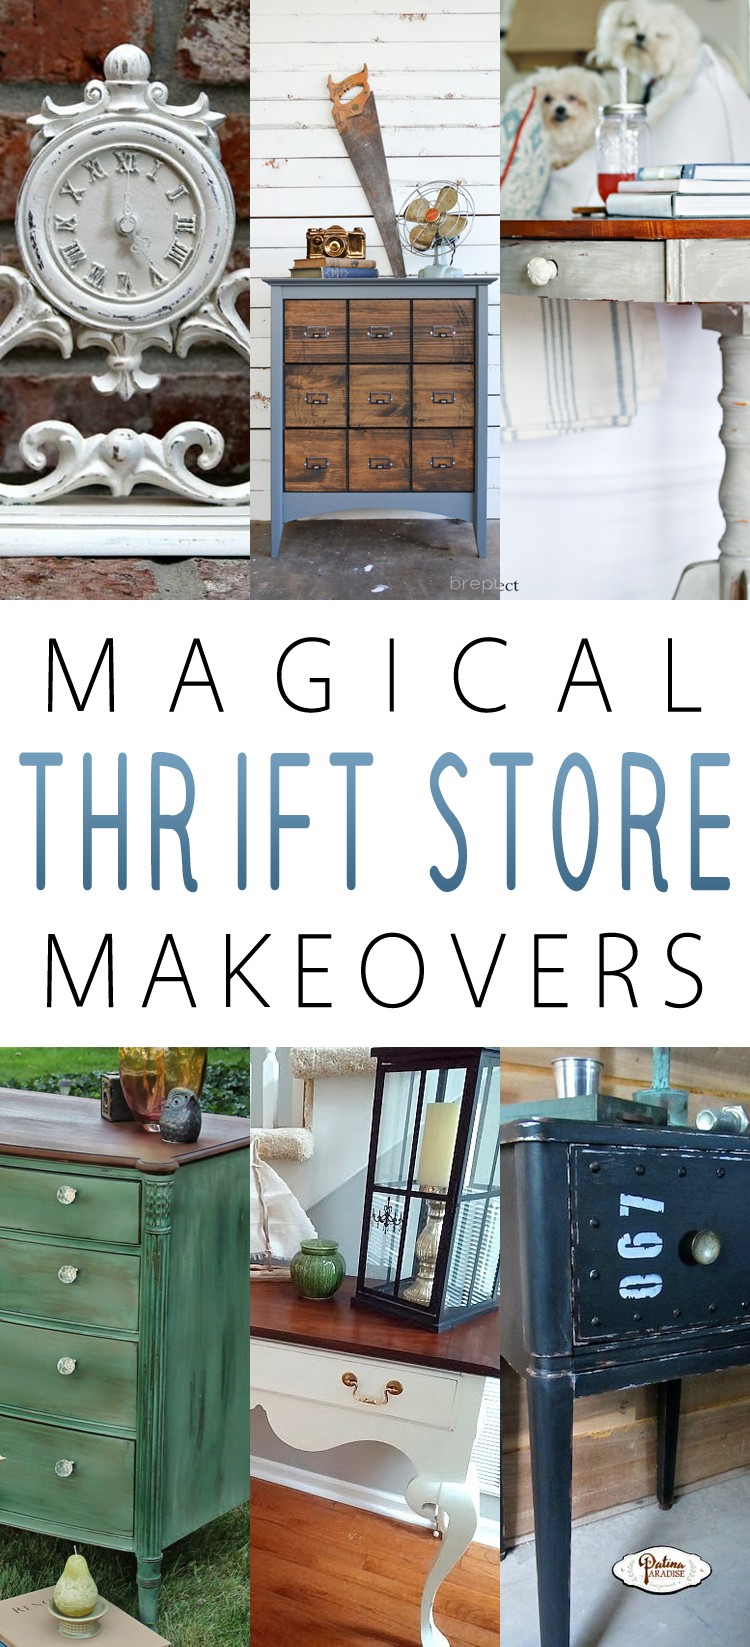 http://thecottagemarket.com/wp-content/uploads/2015/08/Makeover-TOWERR-123456.png